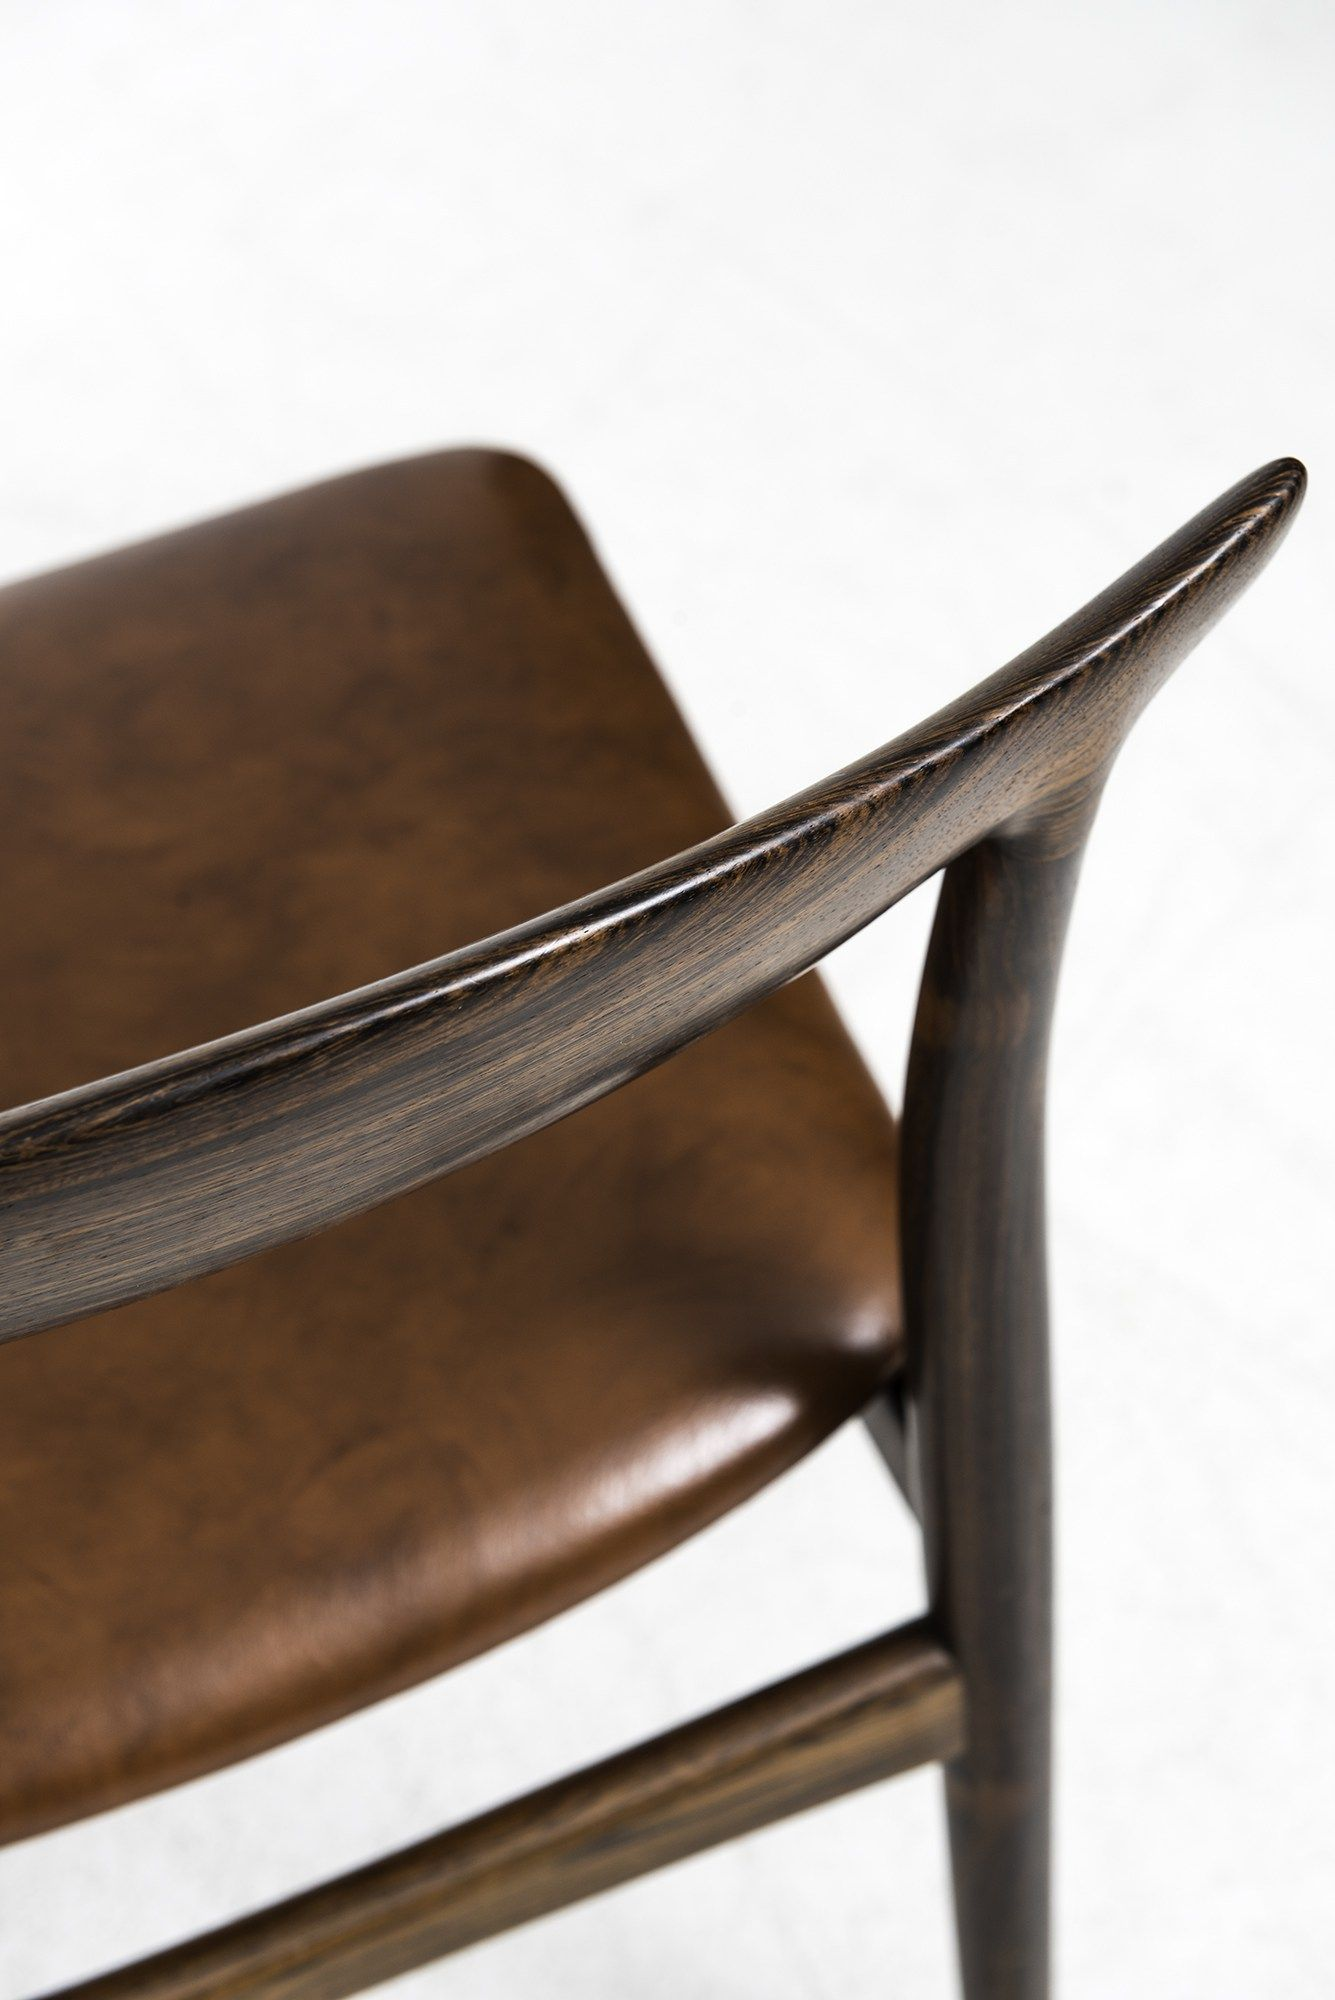 Erik W Rts Dining Chairs Model 112 In Rosewood At